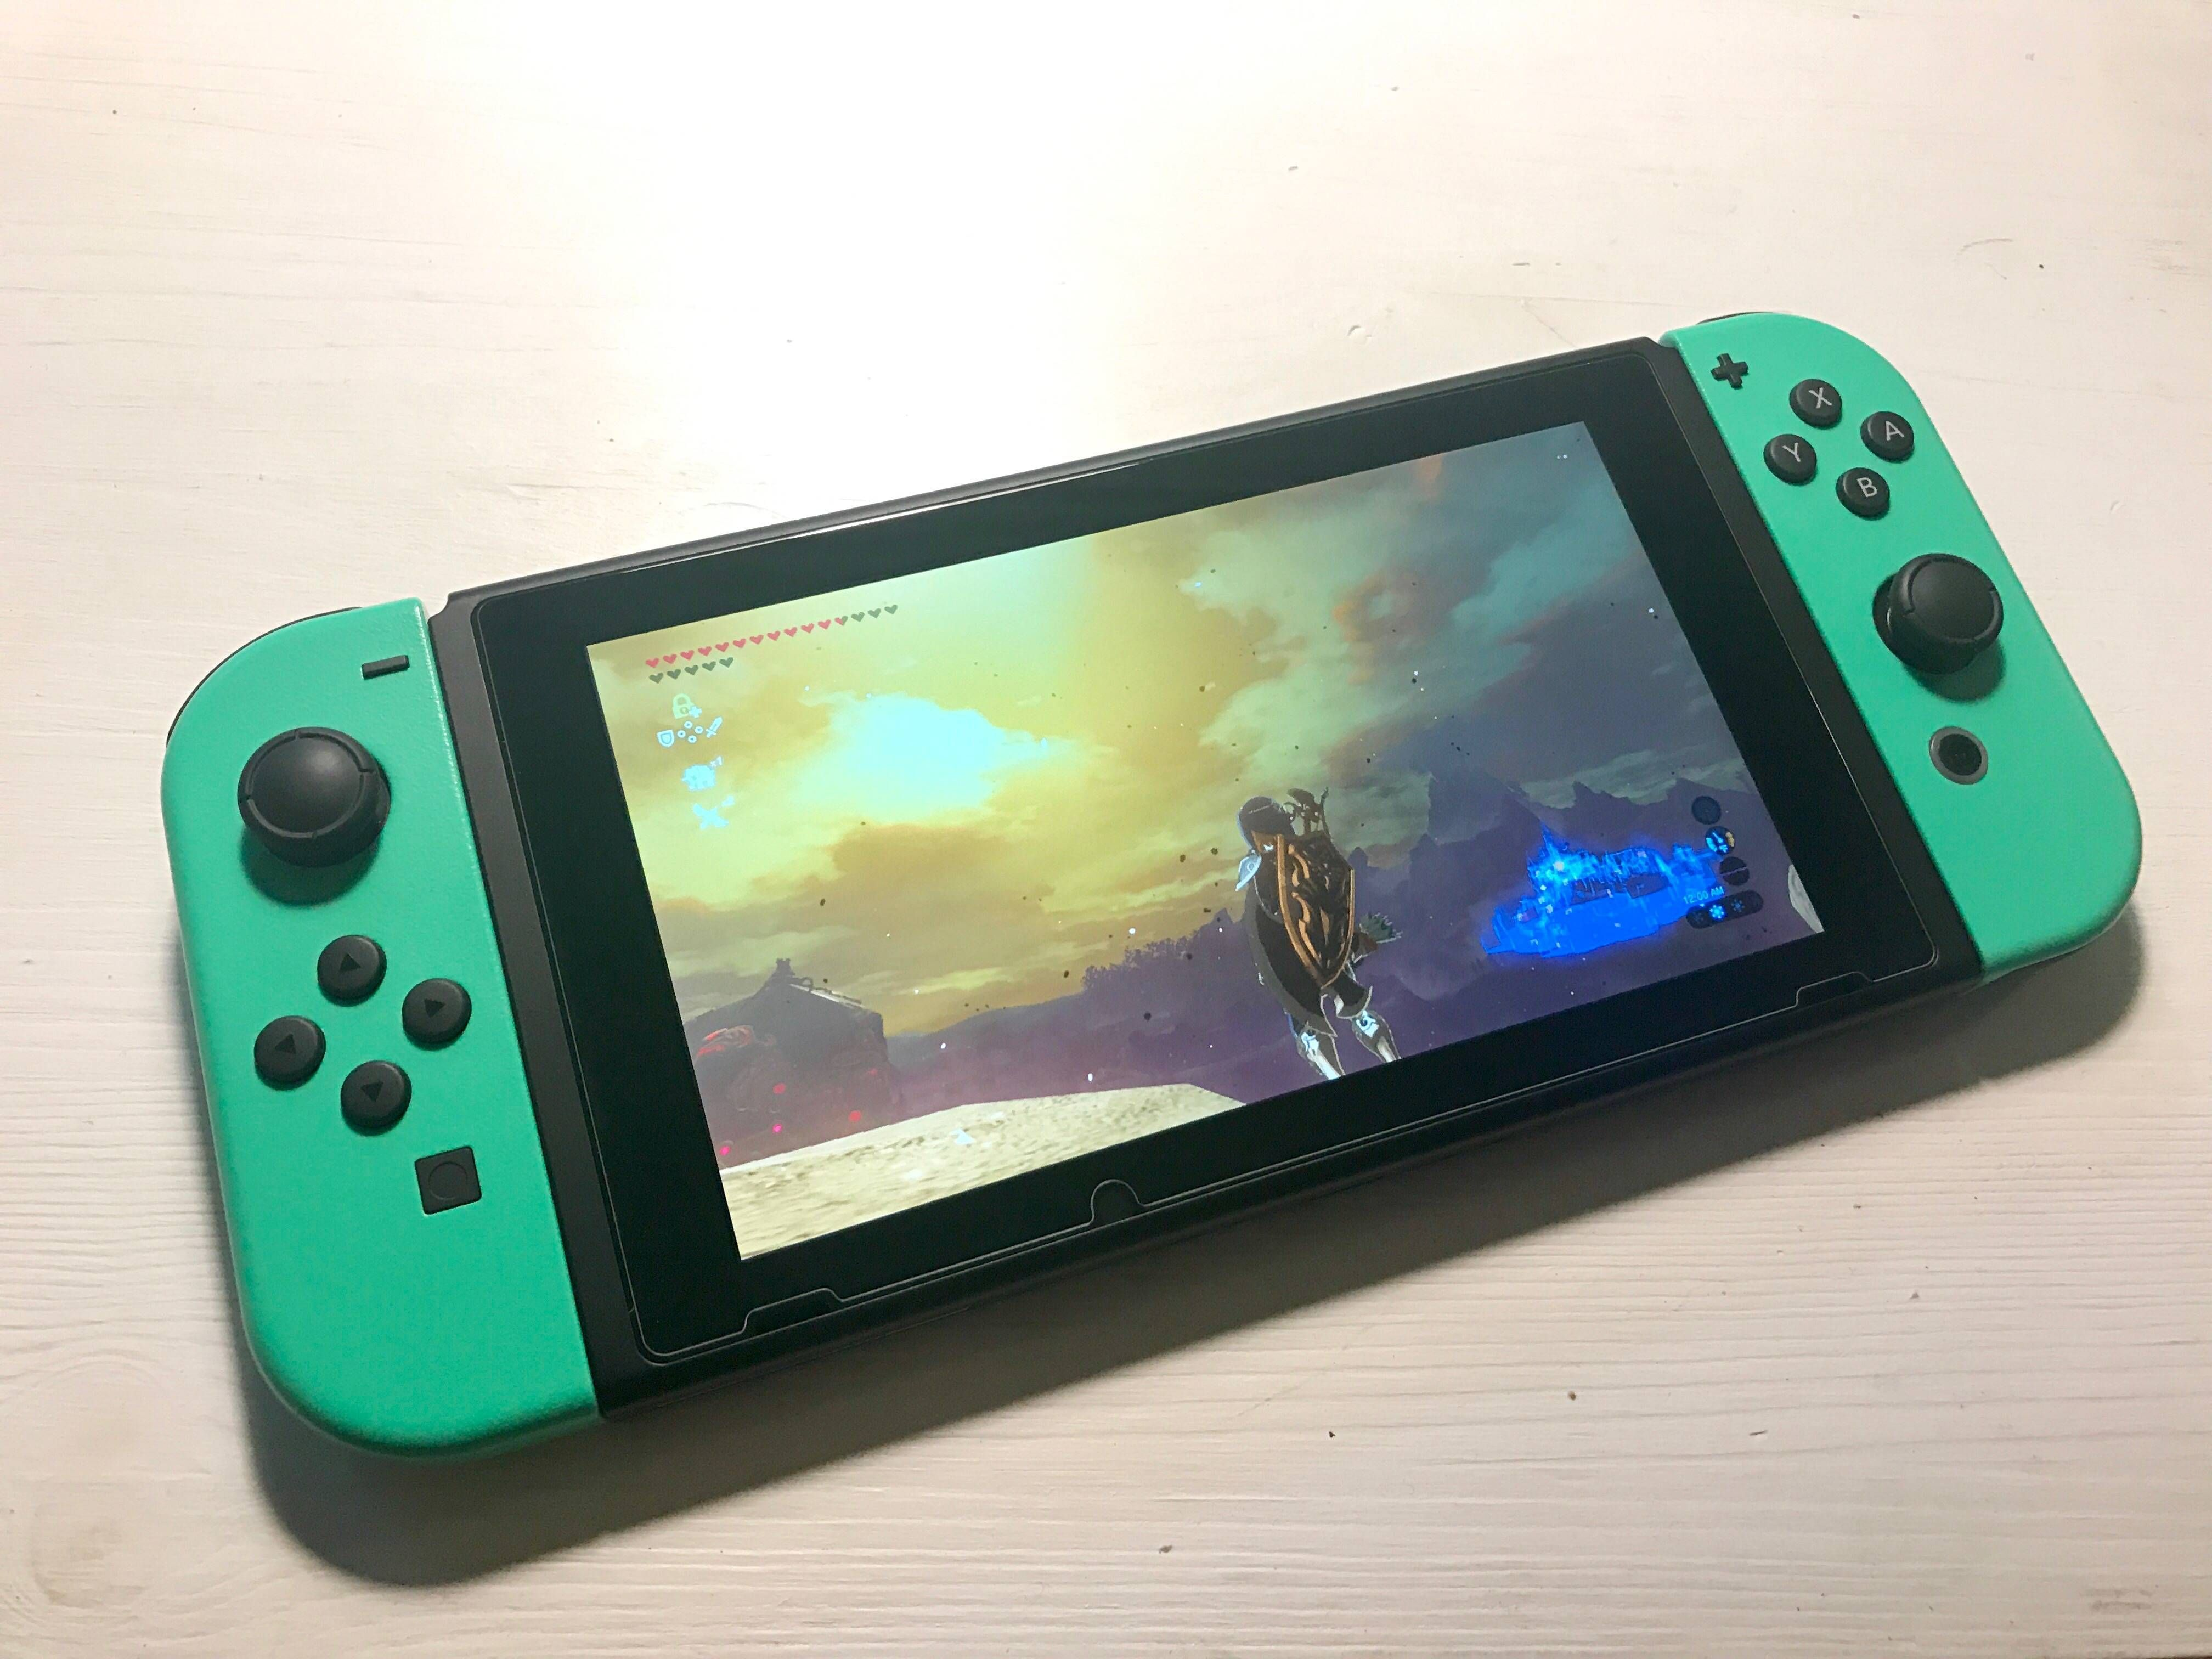 My mint green joy-cons - haven't seen this color posted yet